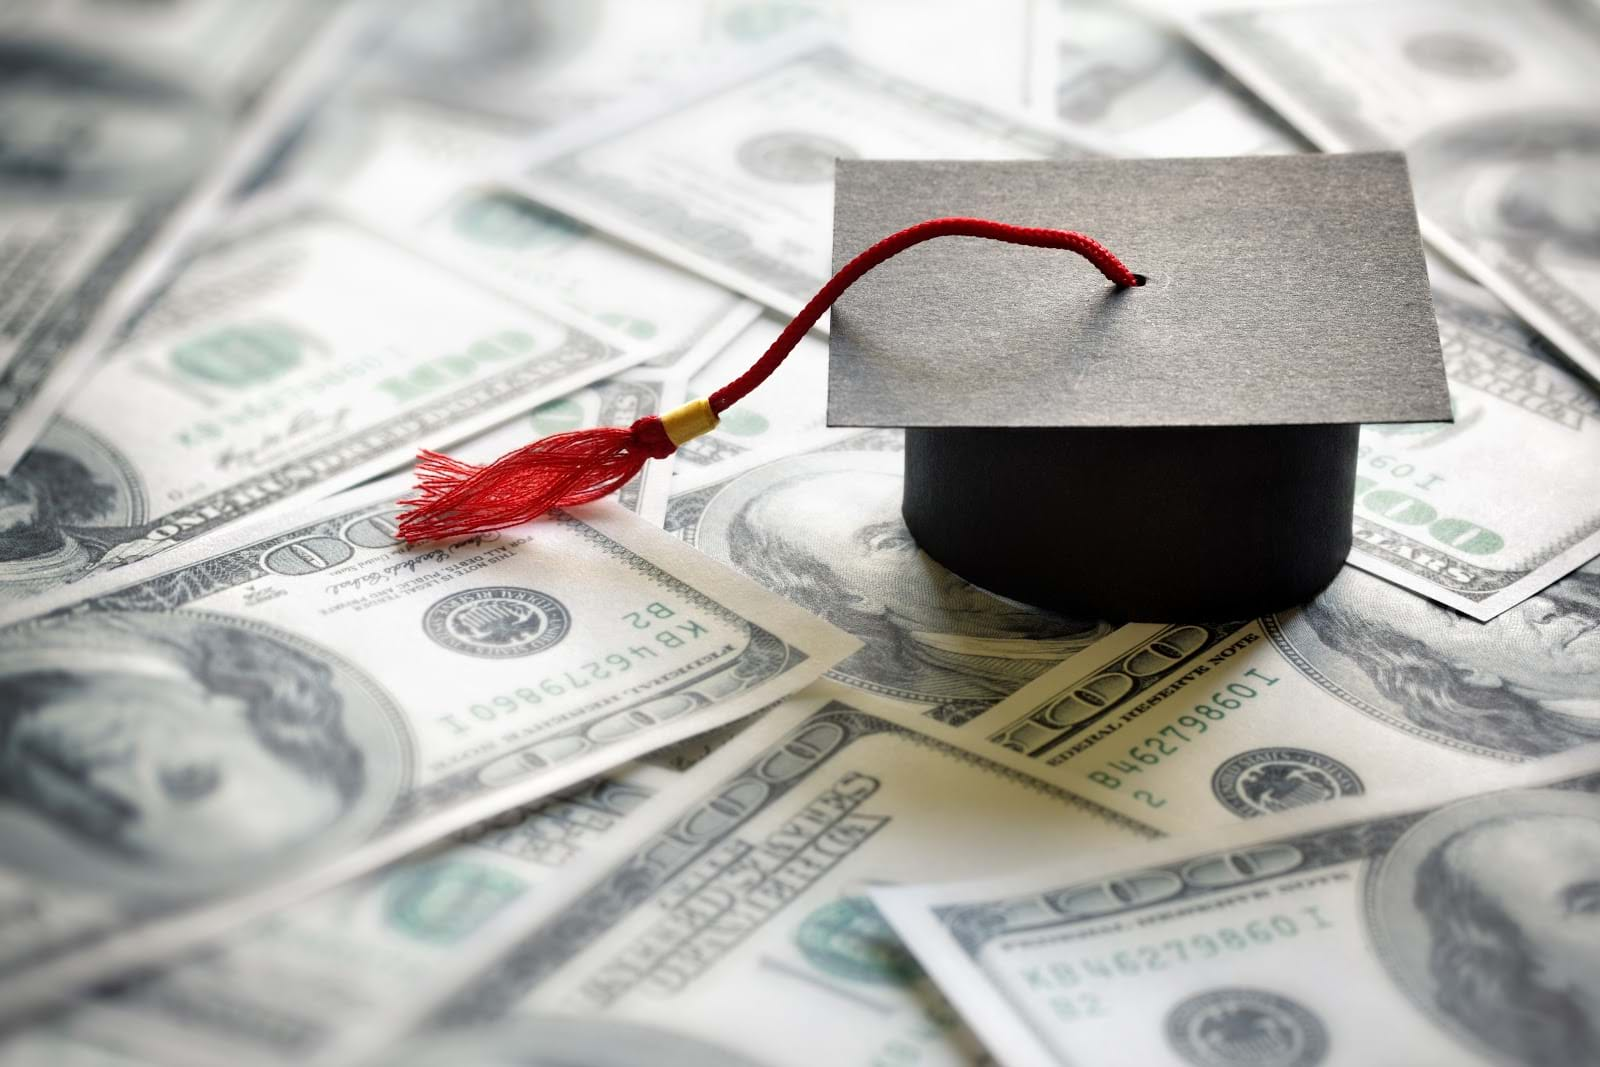 How do I prepare for college now?(Money wise)?